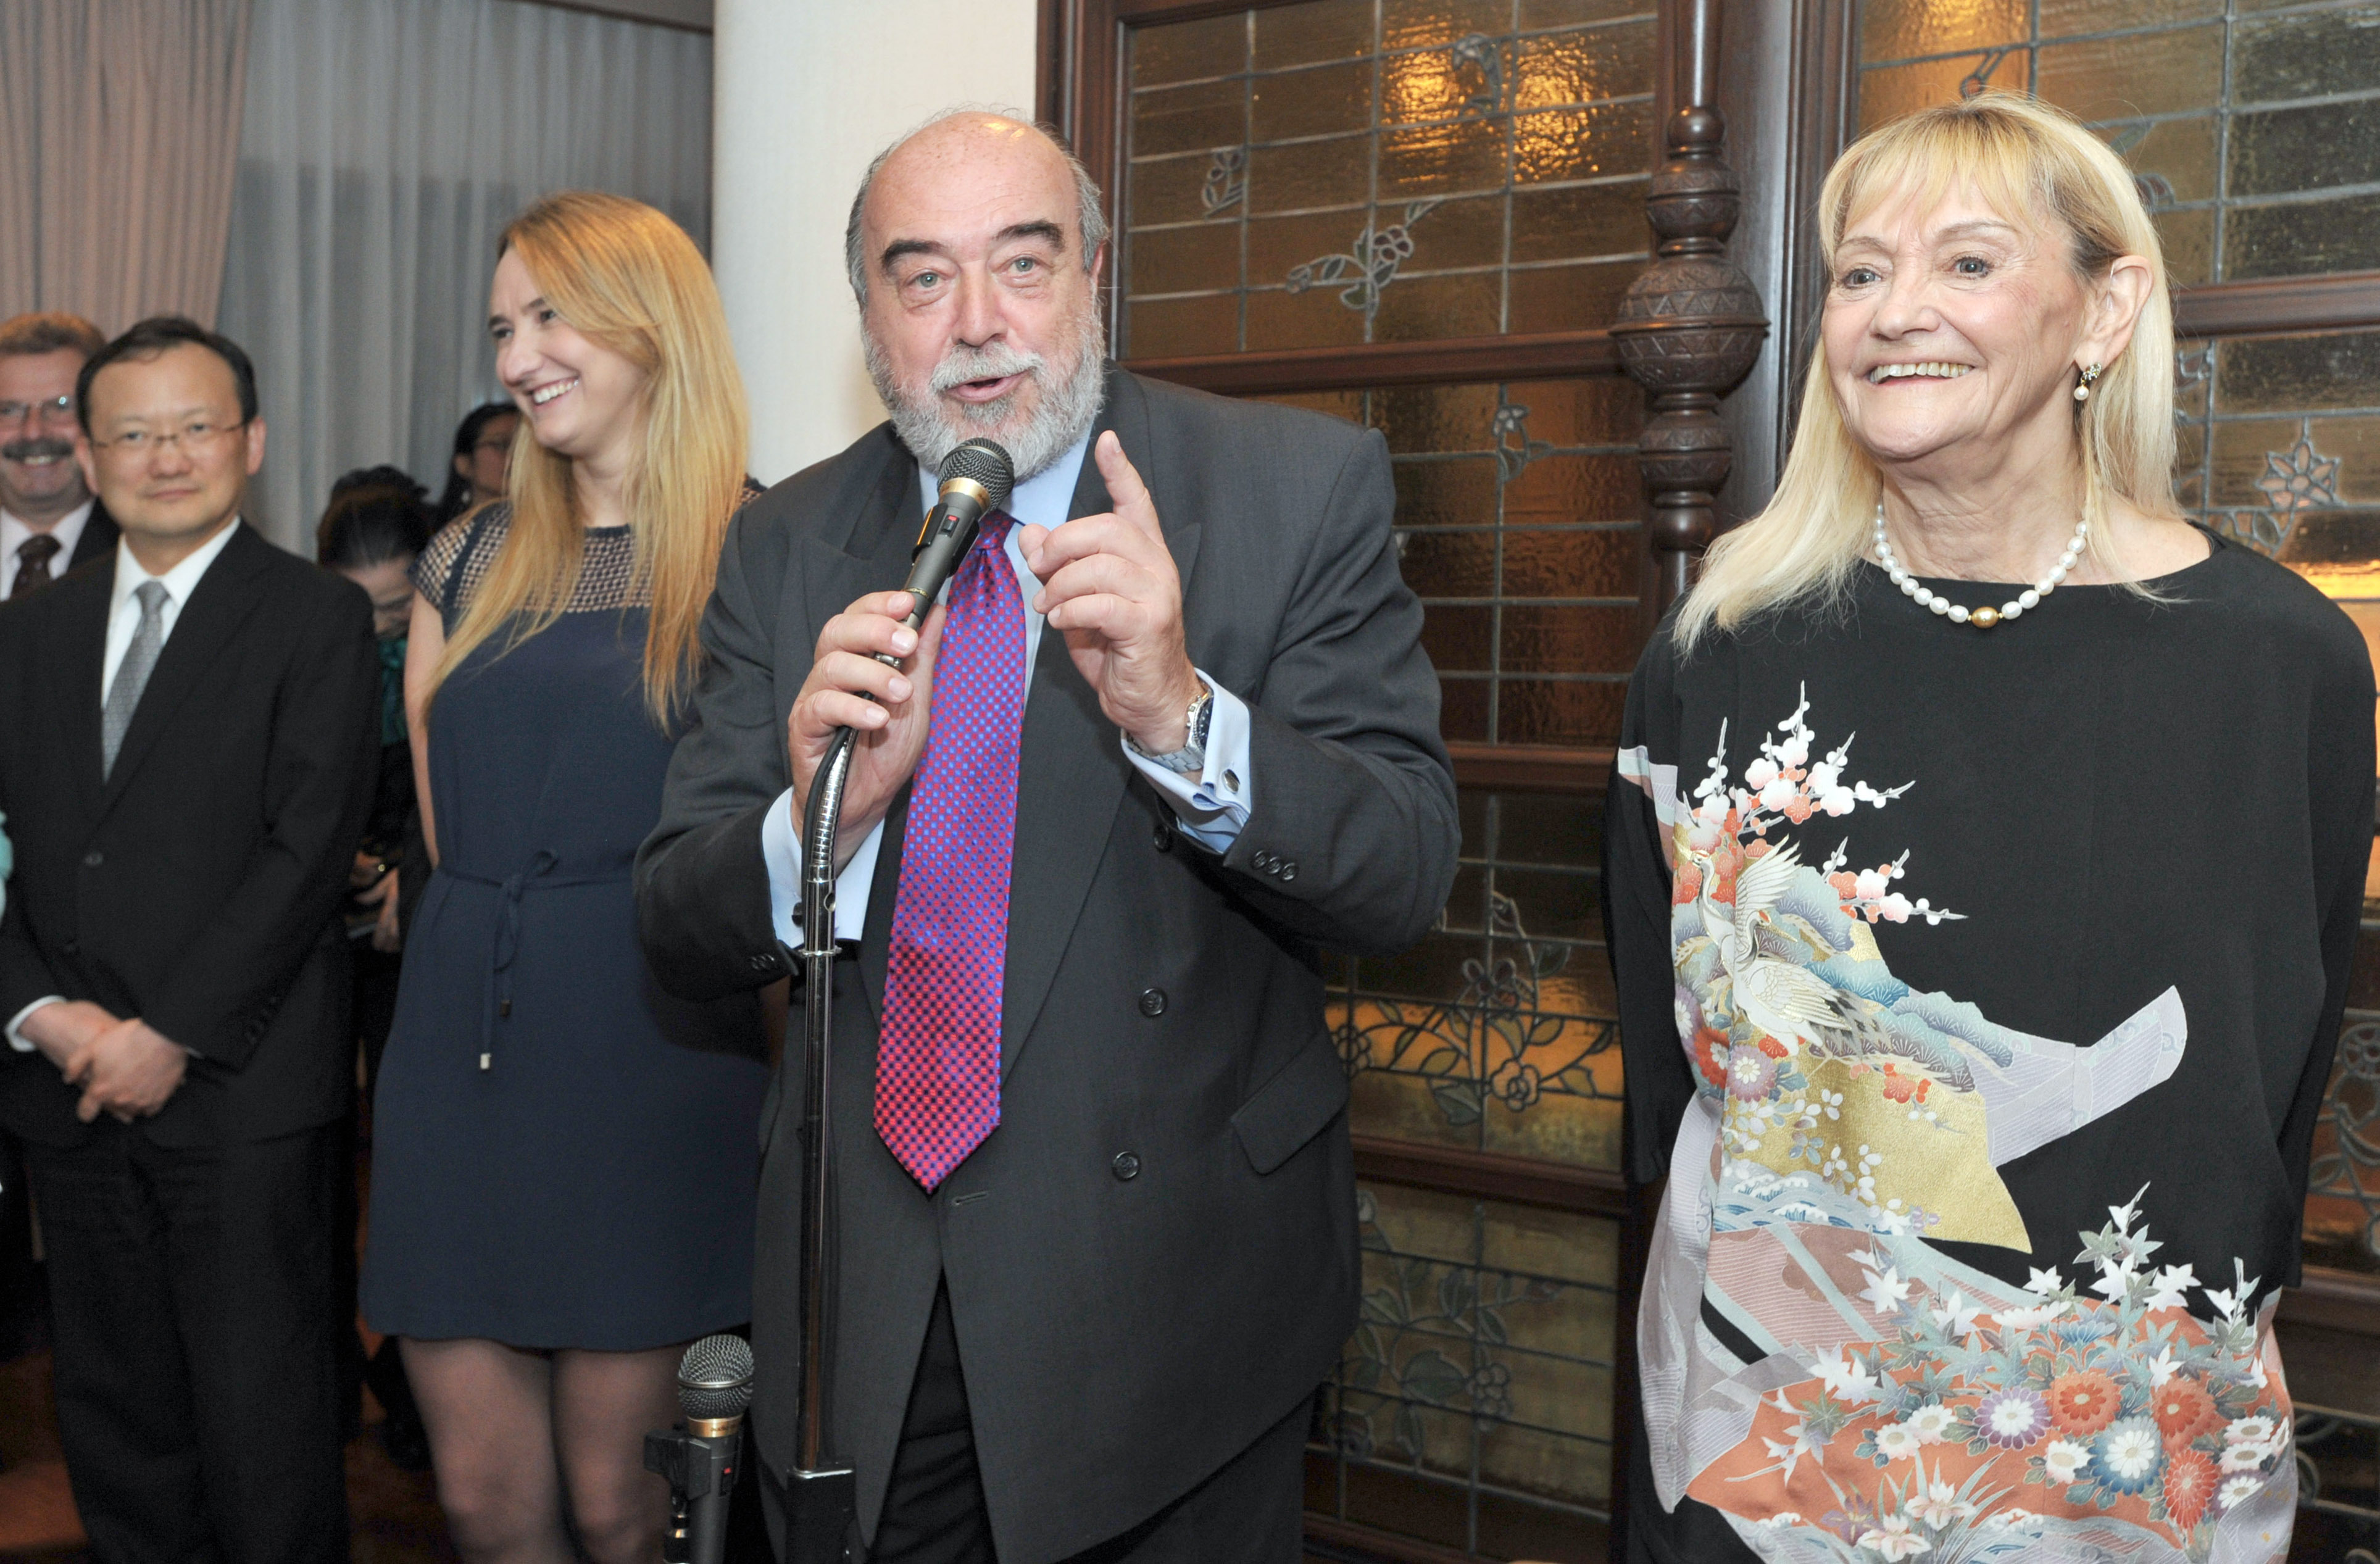 Argentine Ambassador Raul Dejean (second from right) is flanked by his wife Teresa (right) and  daughter Mariangeles (second from left) as he speaks at a farewell reception at the ambassador's residence on March 30. | YOSHIAKI MIURA